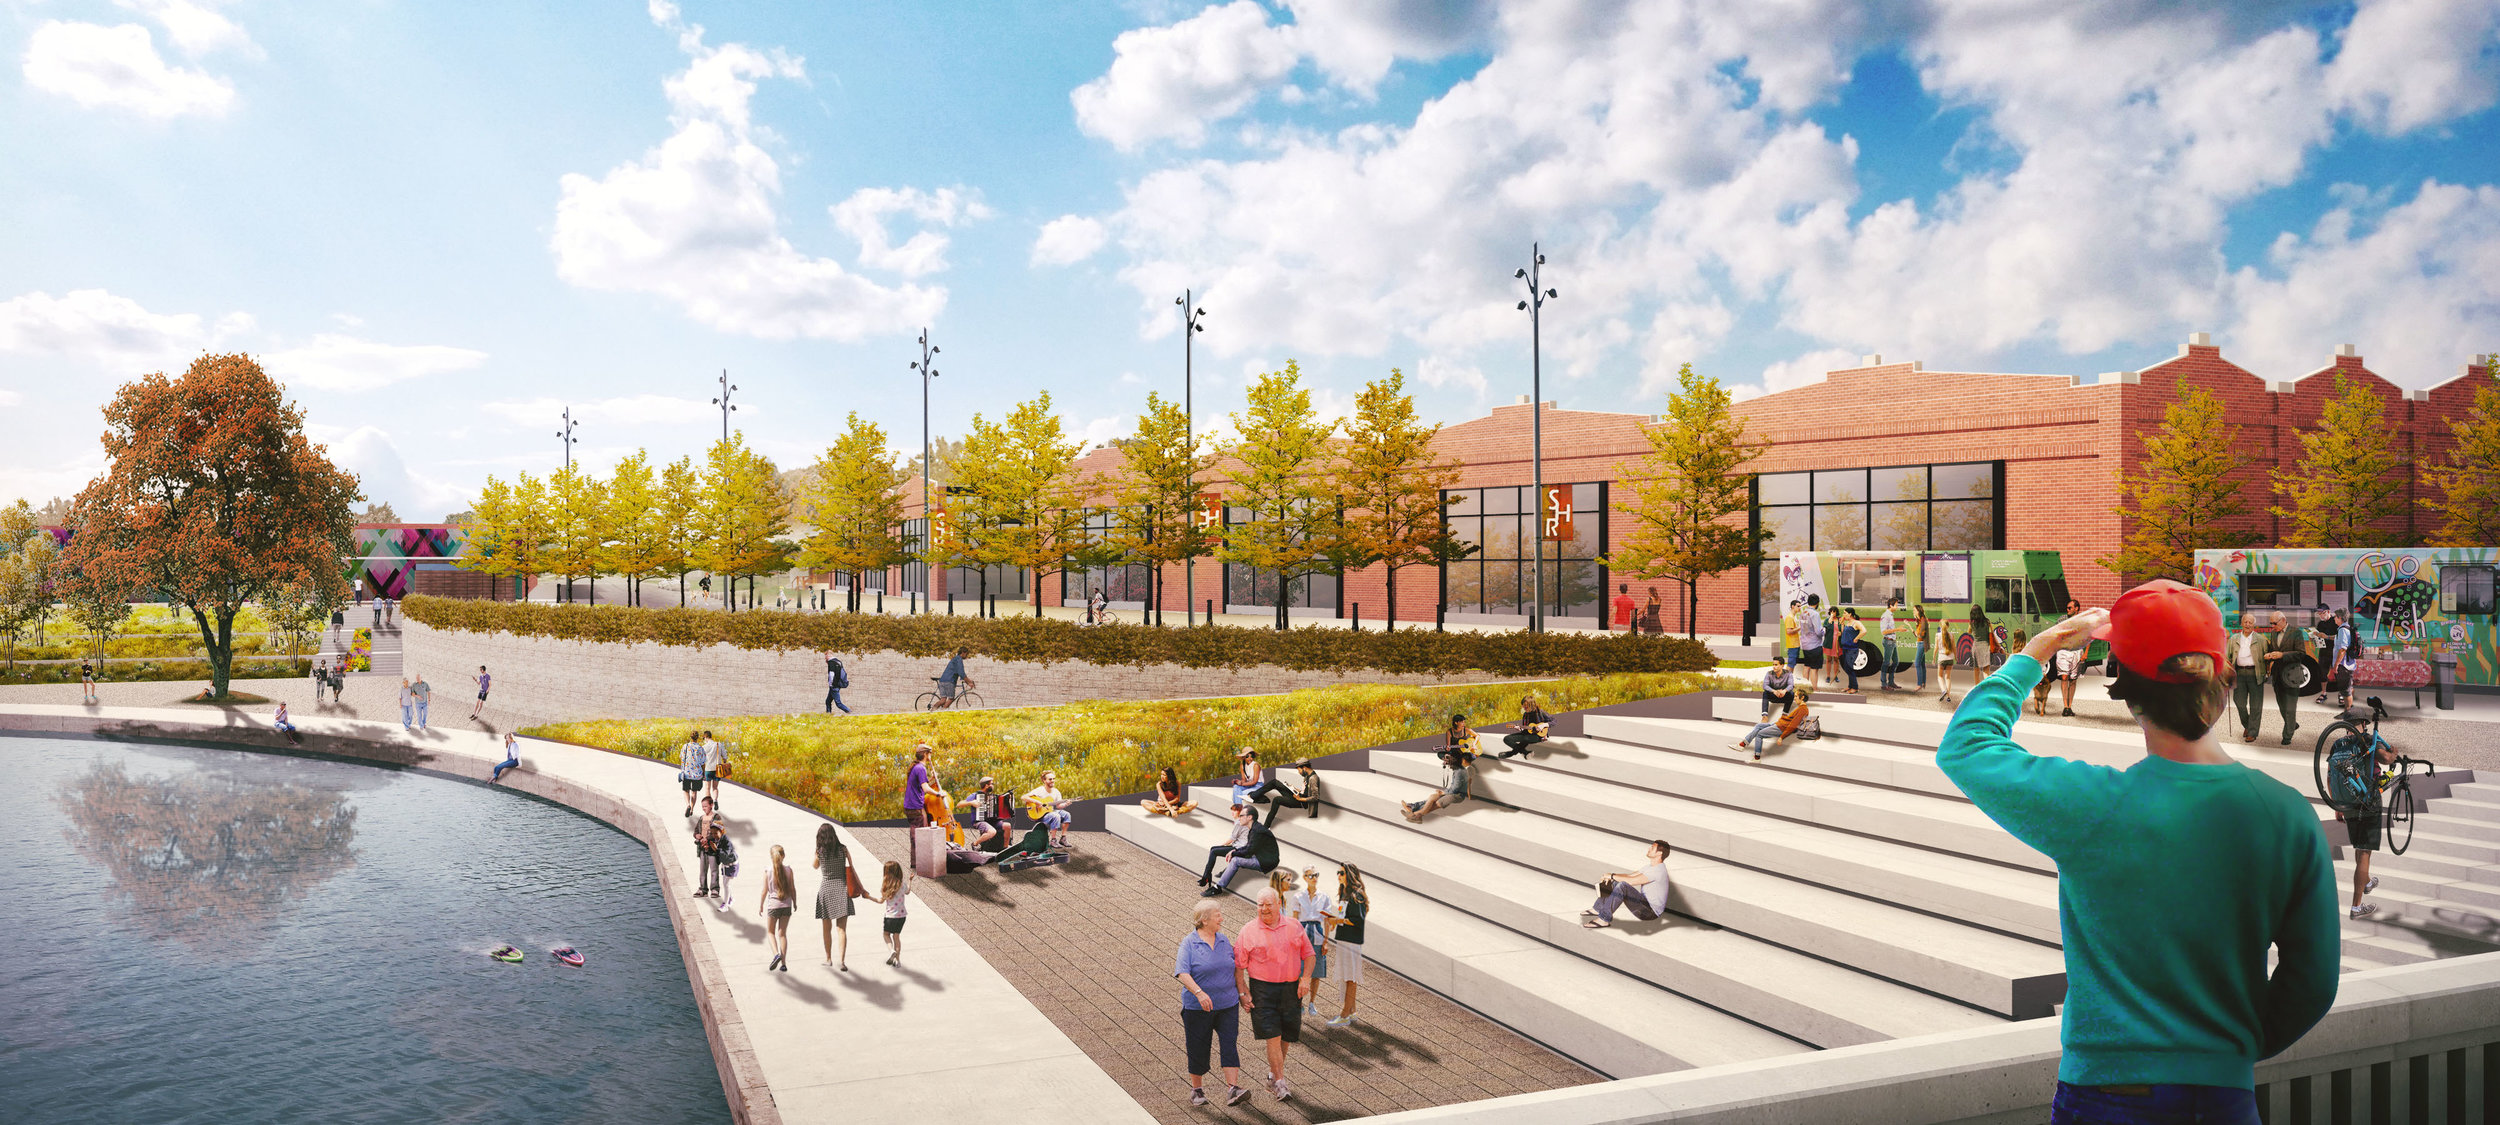 The design of the Iron Avenue Plaza focuses on the creation of an amenity area that engages users with the water while also creating a dynamic, street-level environment on 4th Street, a local street that services a redeveloping warehouse district.